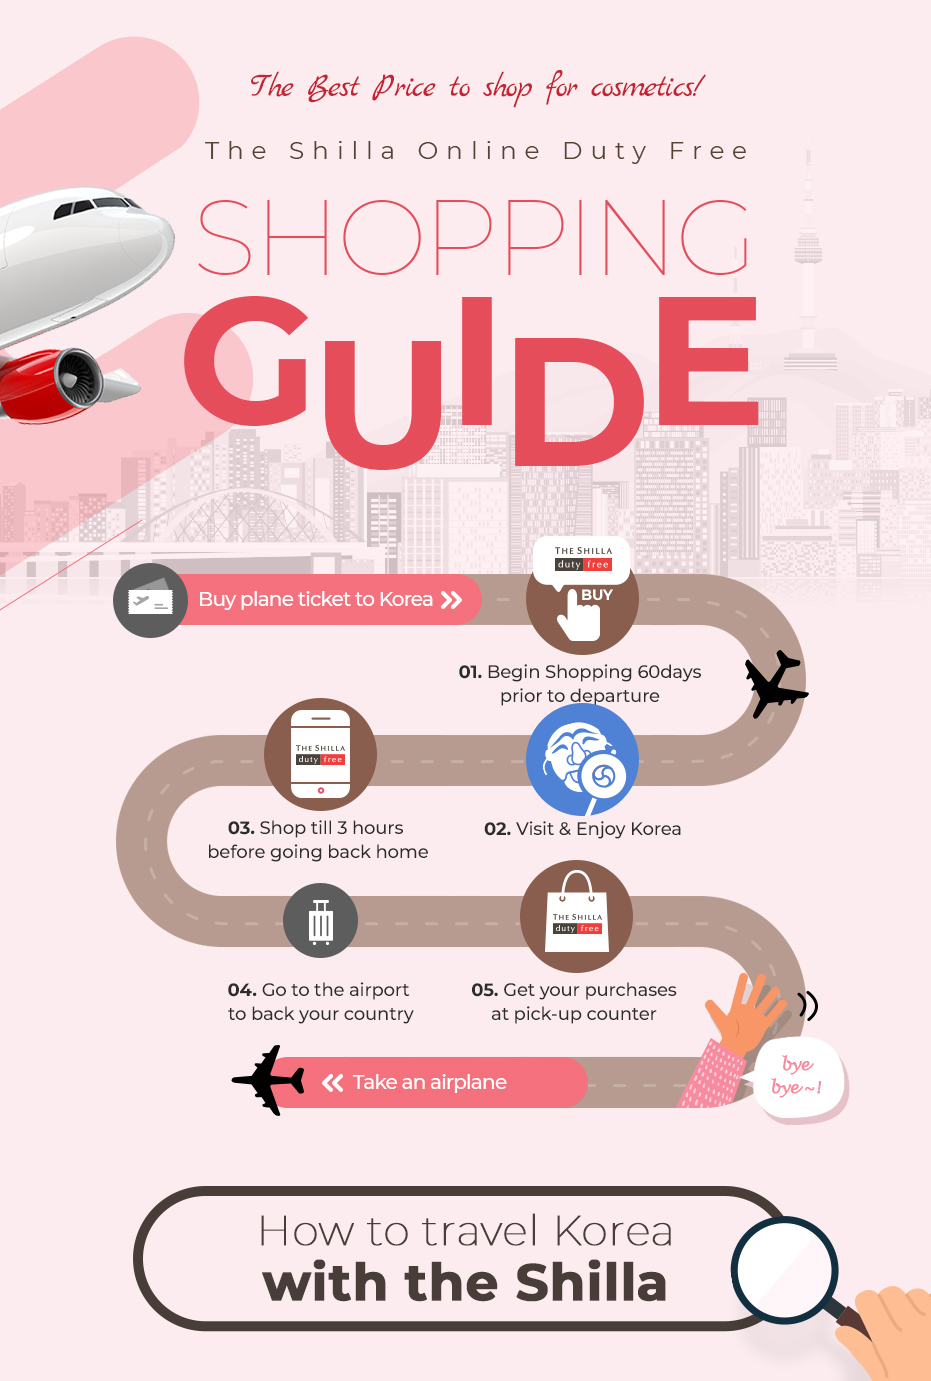 The Best Price to shop for cosmetics ! The Shilla duty free online mall Shopping Guide !